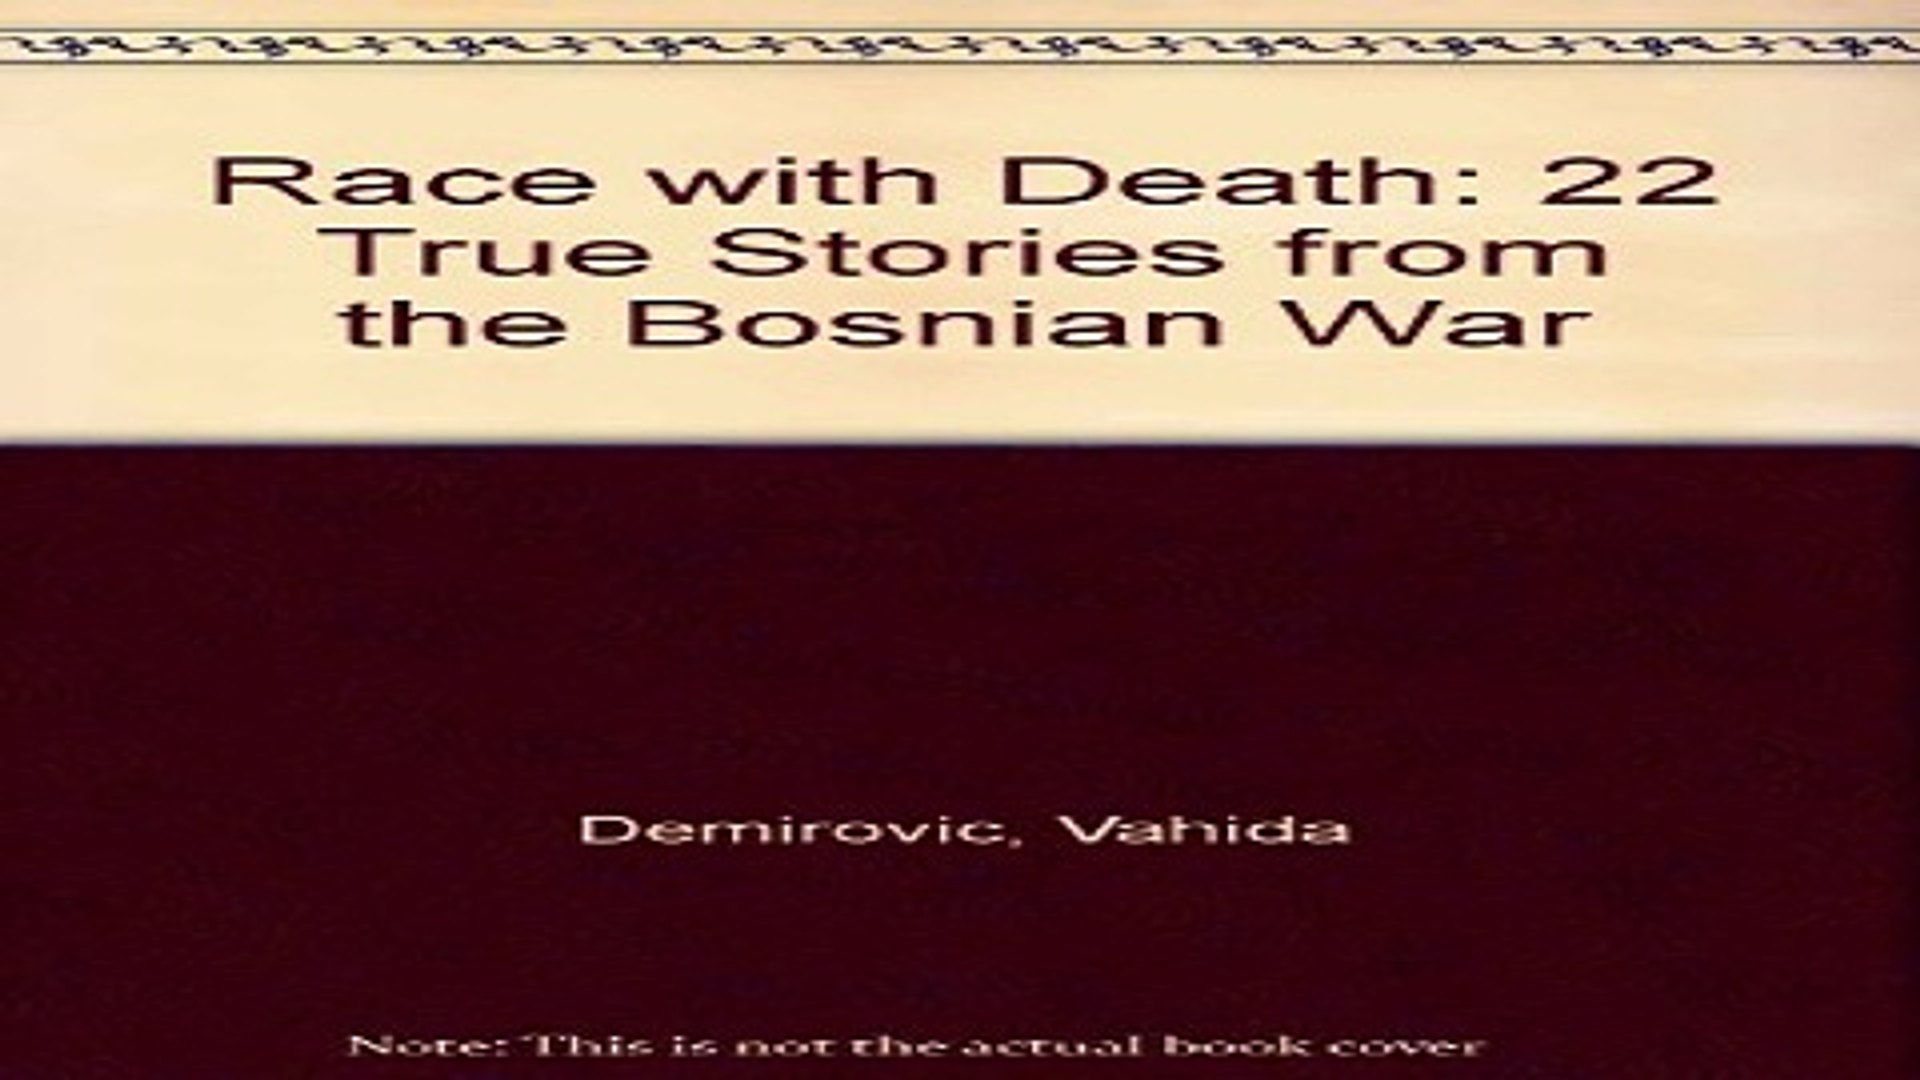 Read Race with Death  22 True Stories from the Bosnian War Ebook pdf download